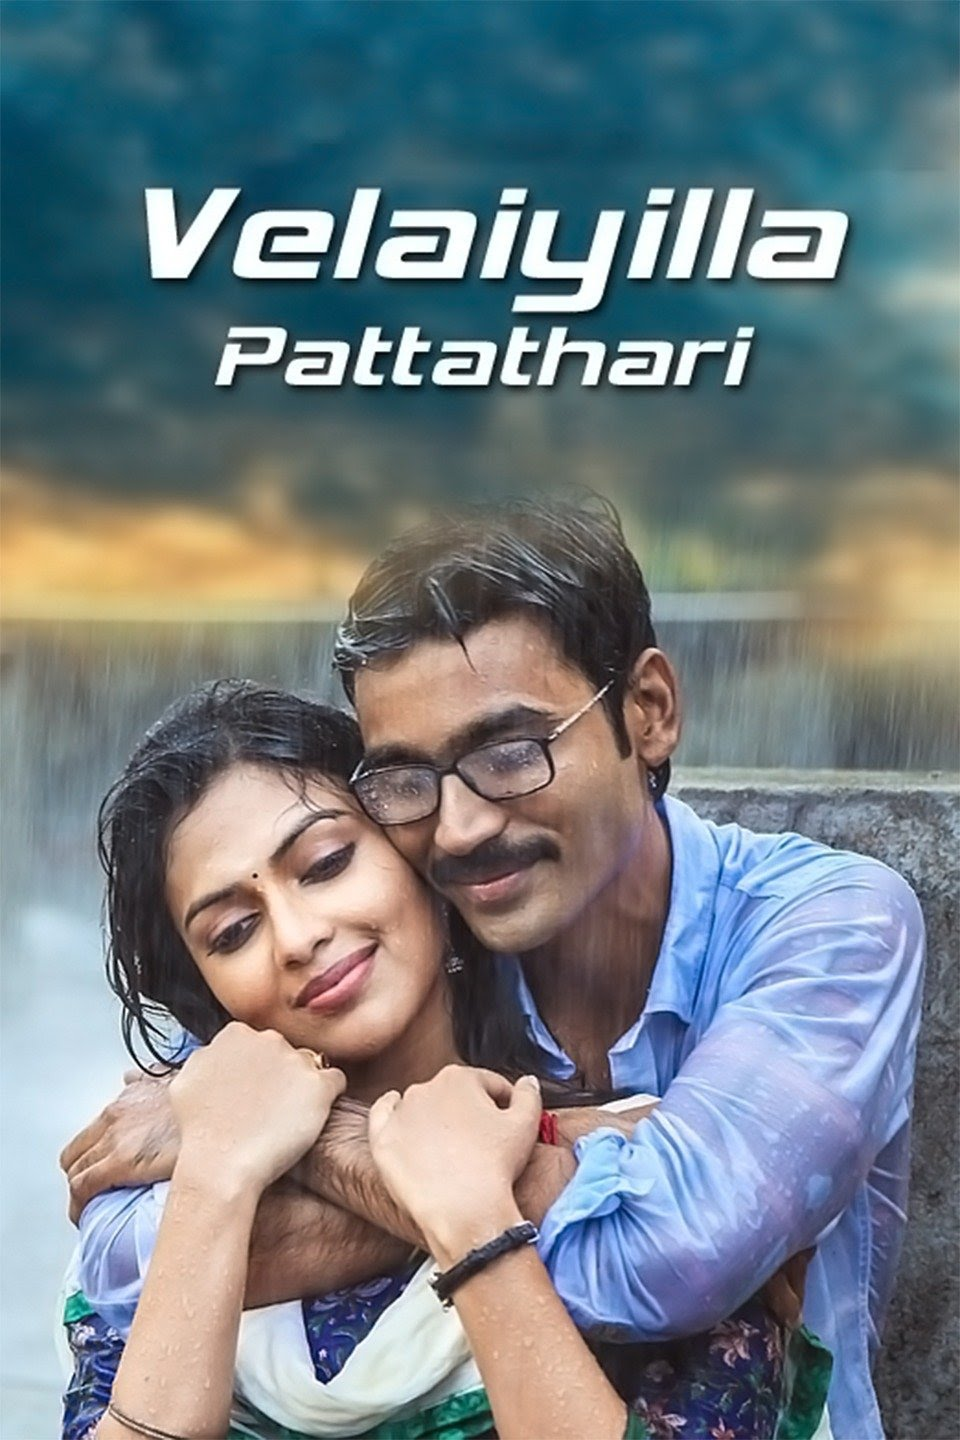 Velaiyilla Pattathari (VIP) 2014 Hindi Dual Audio 1080p UNCUT HDRip 2930MB Download